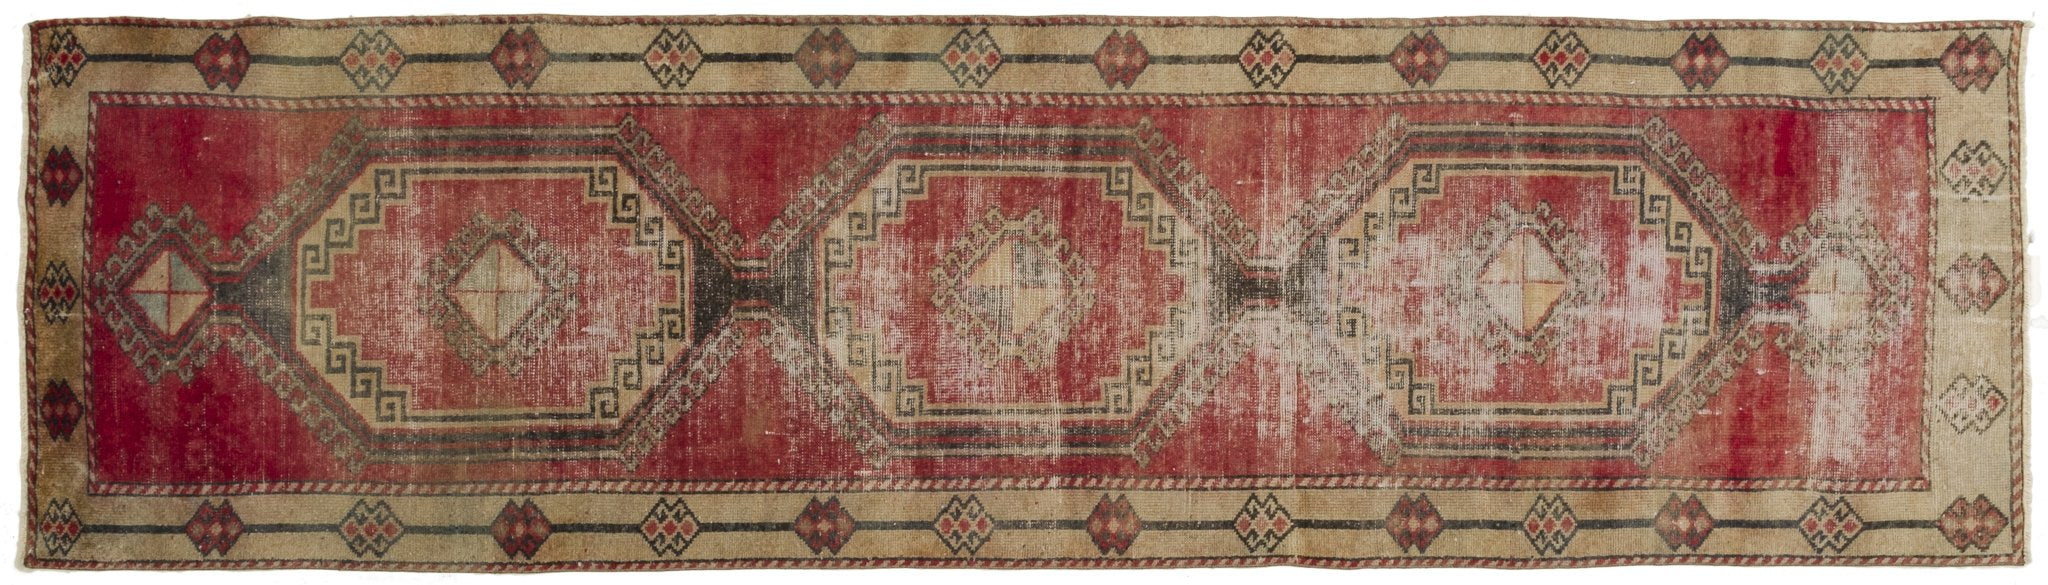 Vintage Turkish Runner Rug Gandolfo